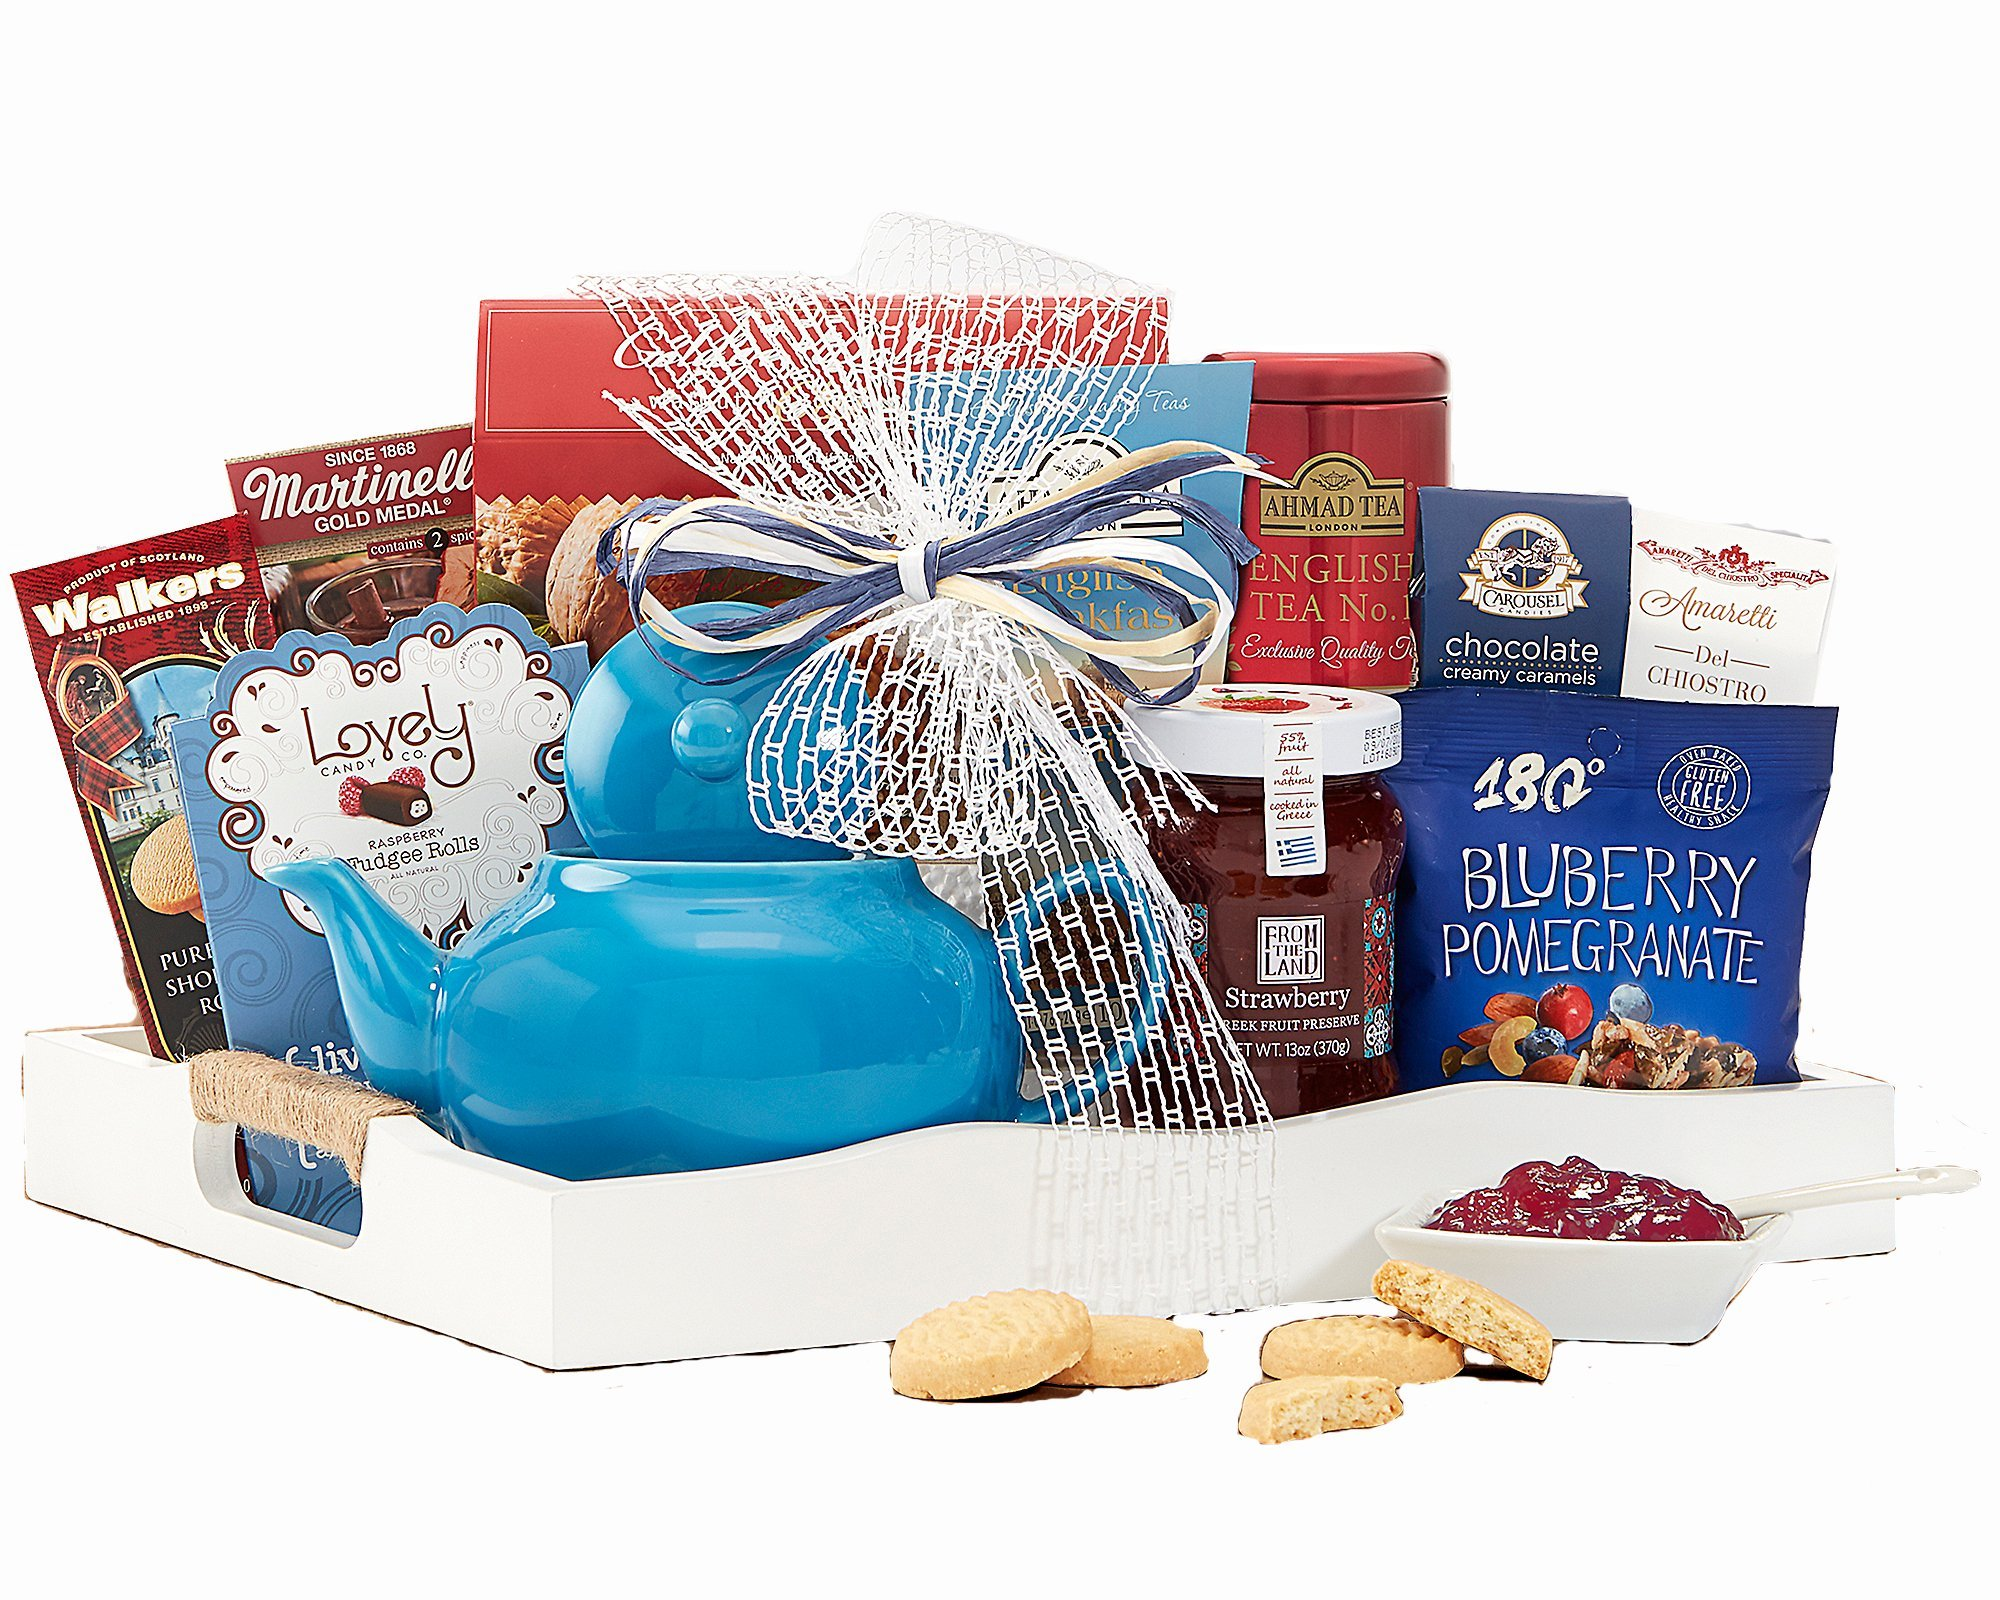 Wine Country Gift Baskets Tea Time Ceramic Teapot English Tea Beautiful Reusable Breakfast Tray w/ Handles Cookies Fruit Preserves Ghirardelli and more Sweets Perfect Gifts for Her by Wine Country Gift Baskets